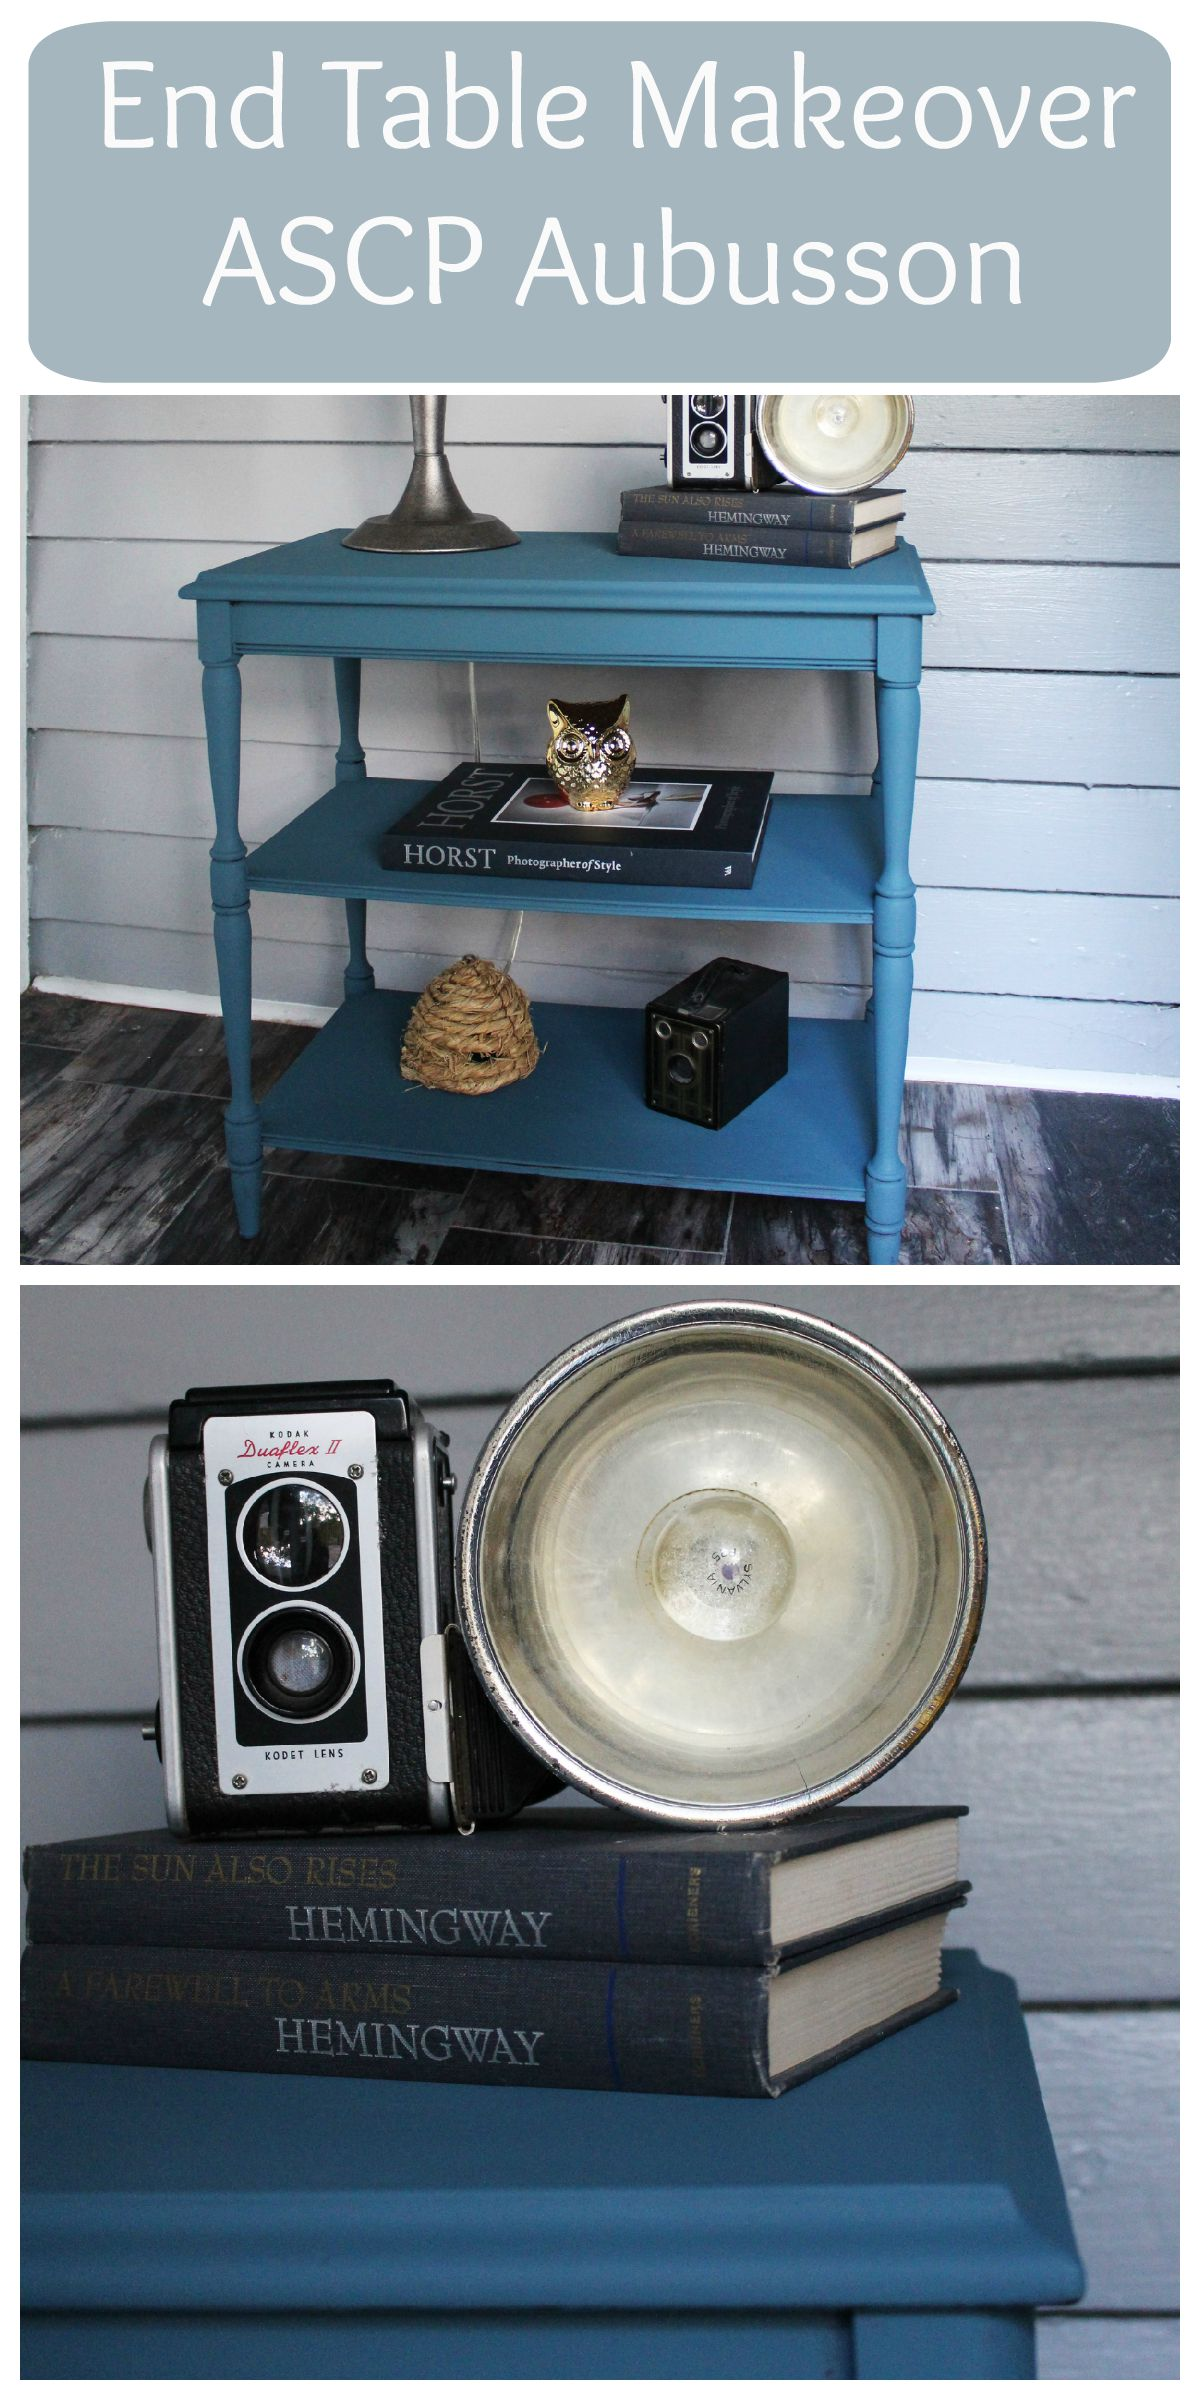 Annie Sloan Chalk Paint in Aubusson - painted end table makeover